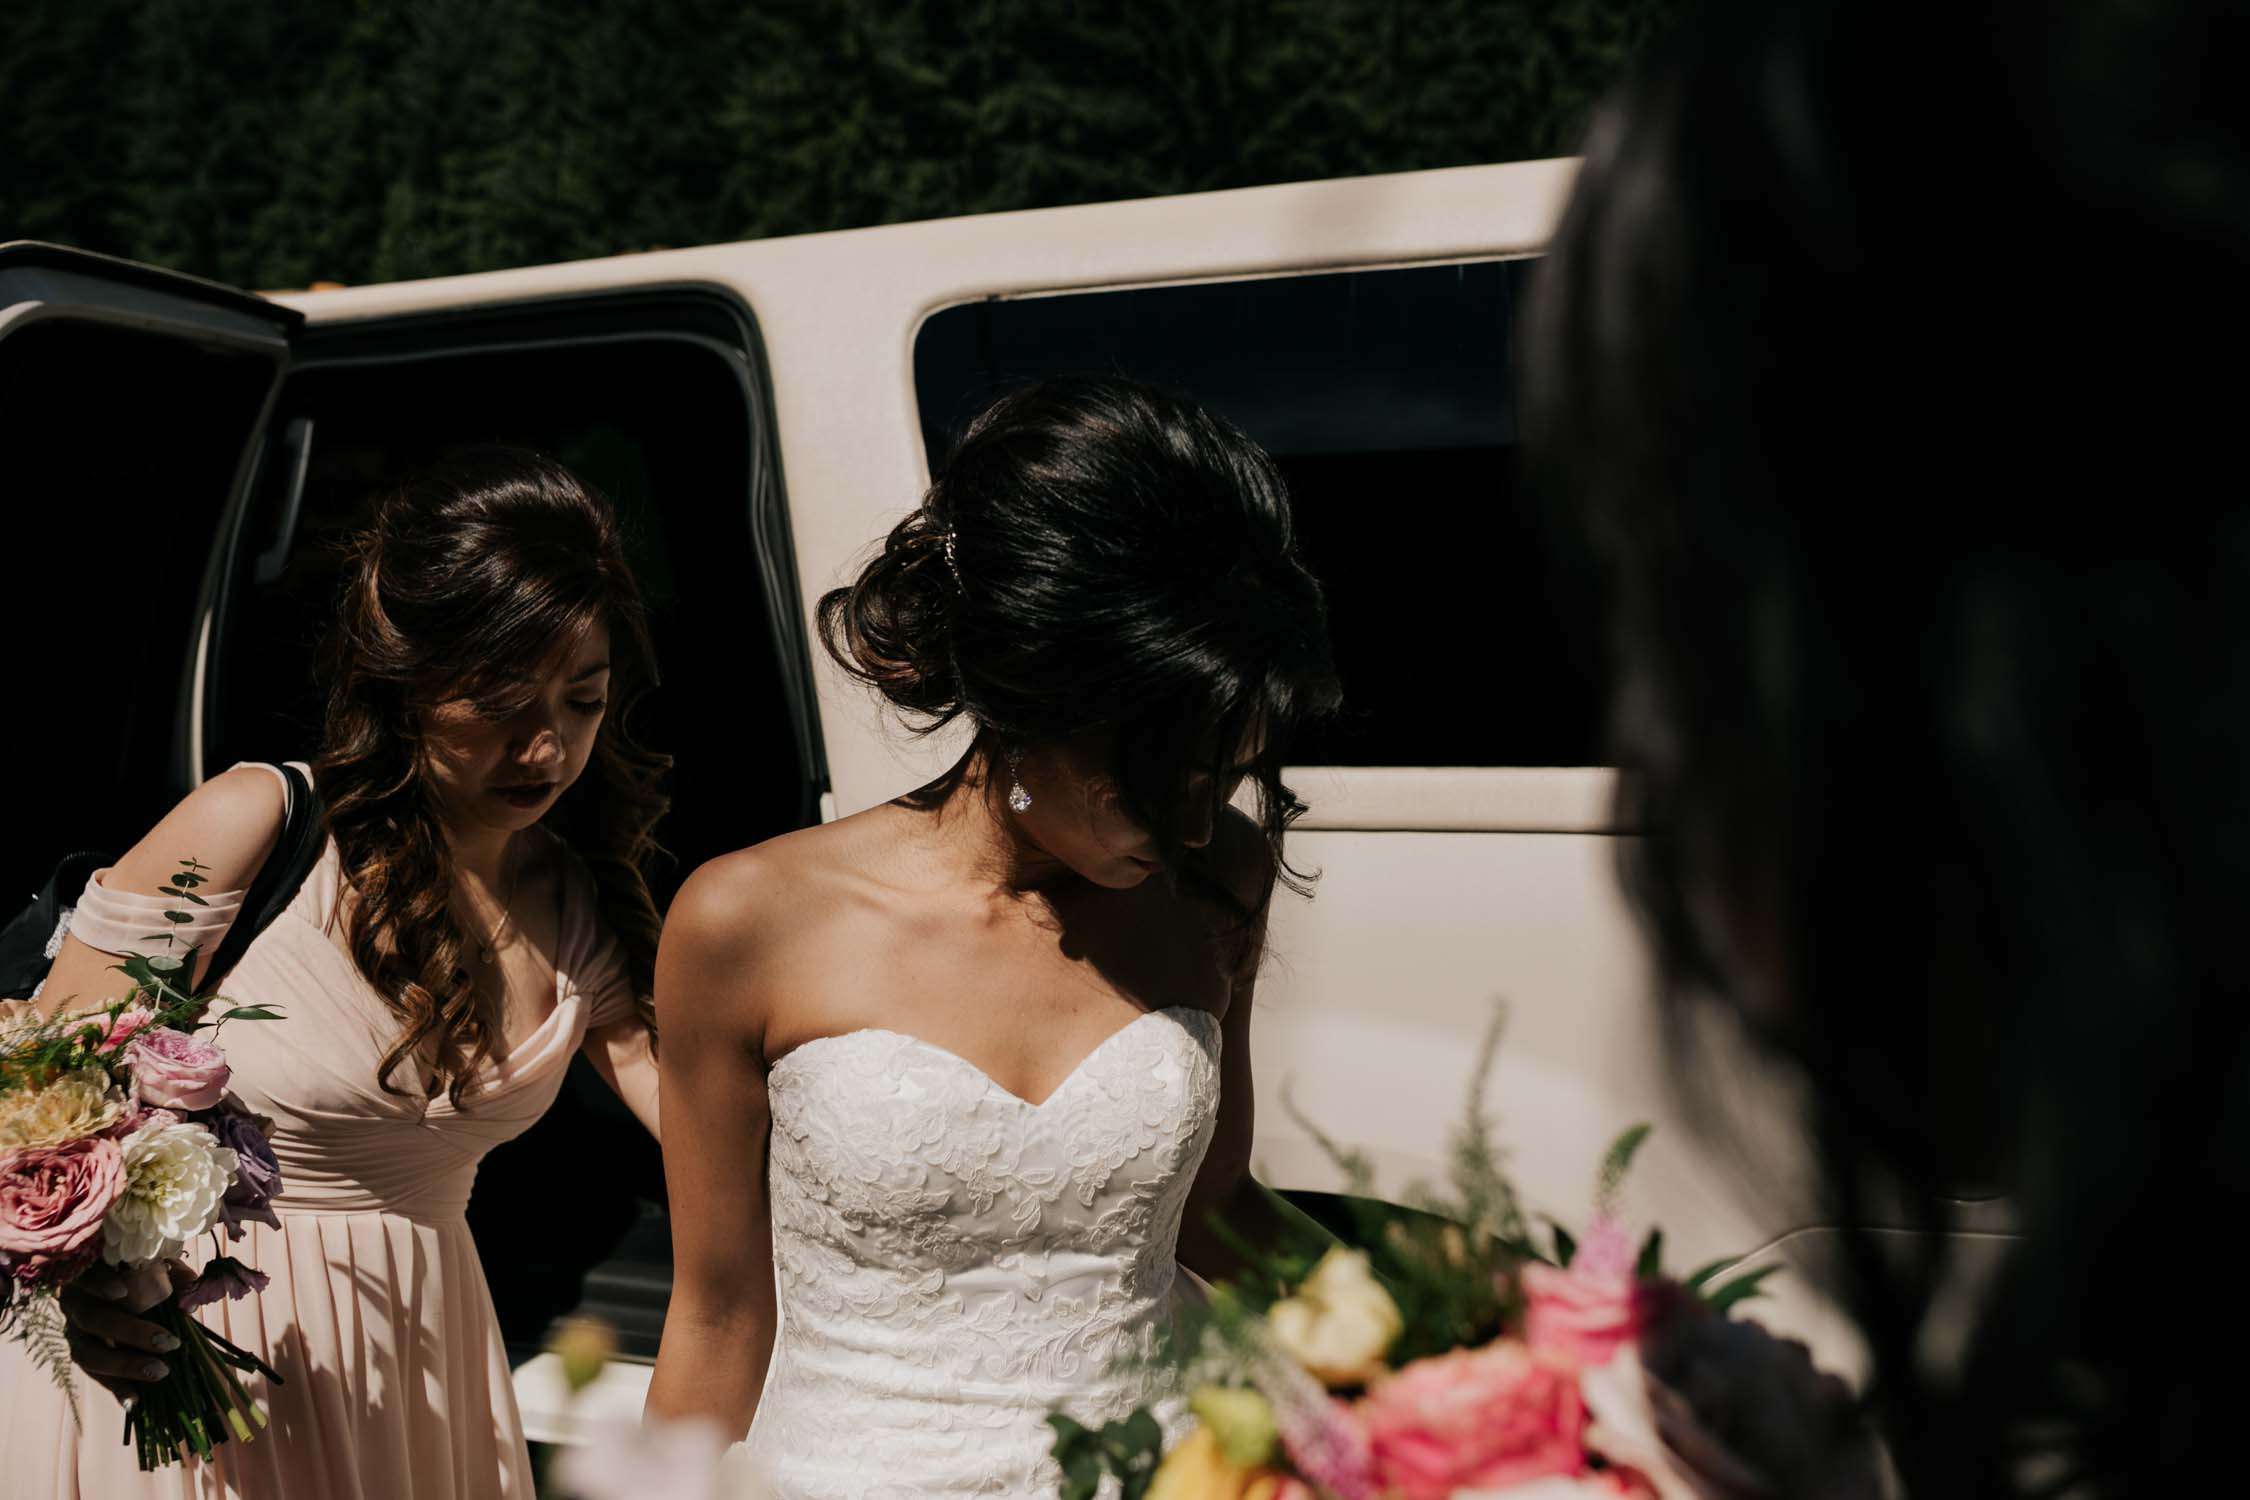 Bride Gets Out Of Car Grouse Mountain Wedding